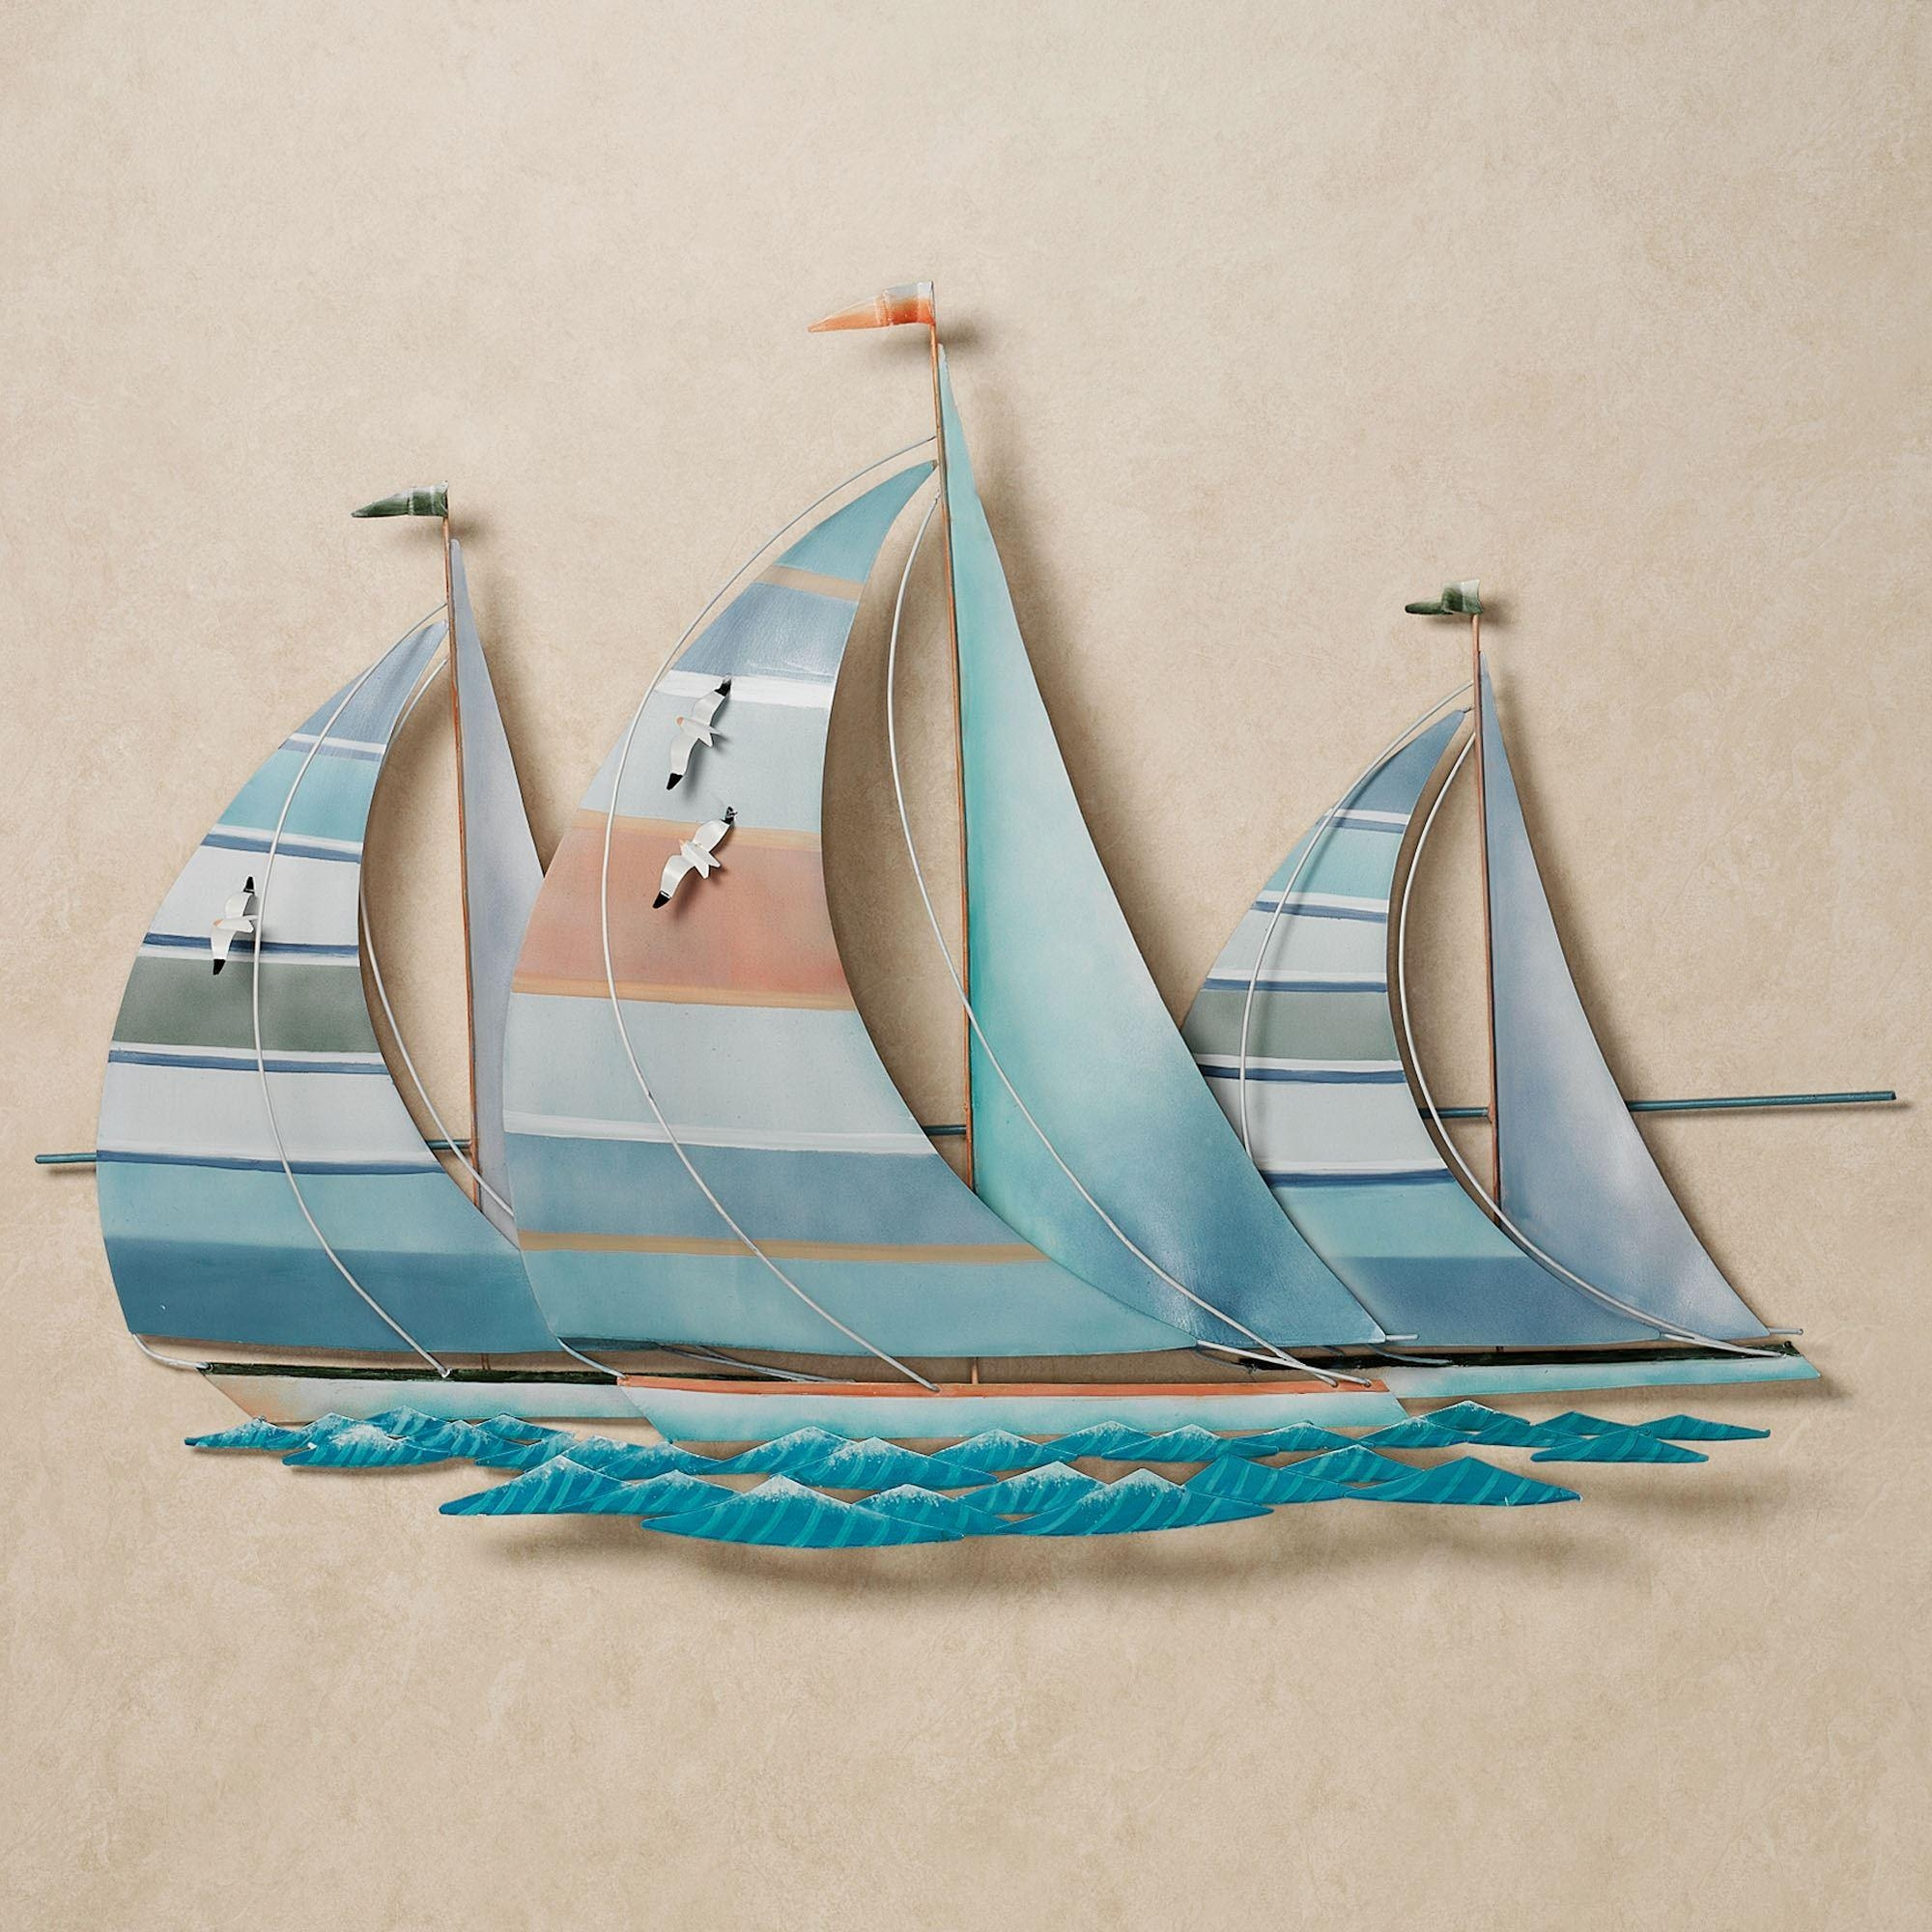 Regatta Finish Line Multi Cool Metal Sailboat Wall Sculpture Intended For Metal Sailboat Wall Art (Image 10 of 20)